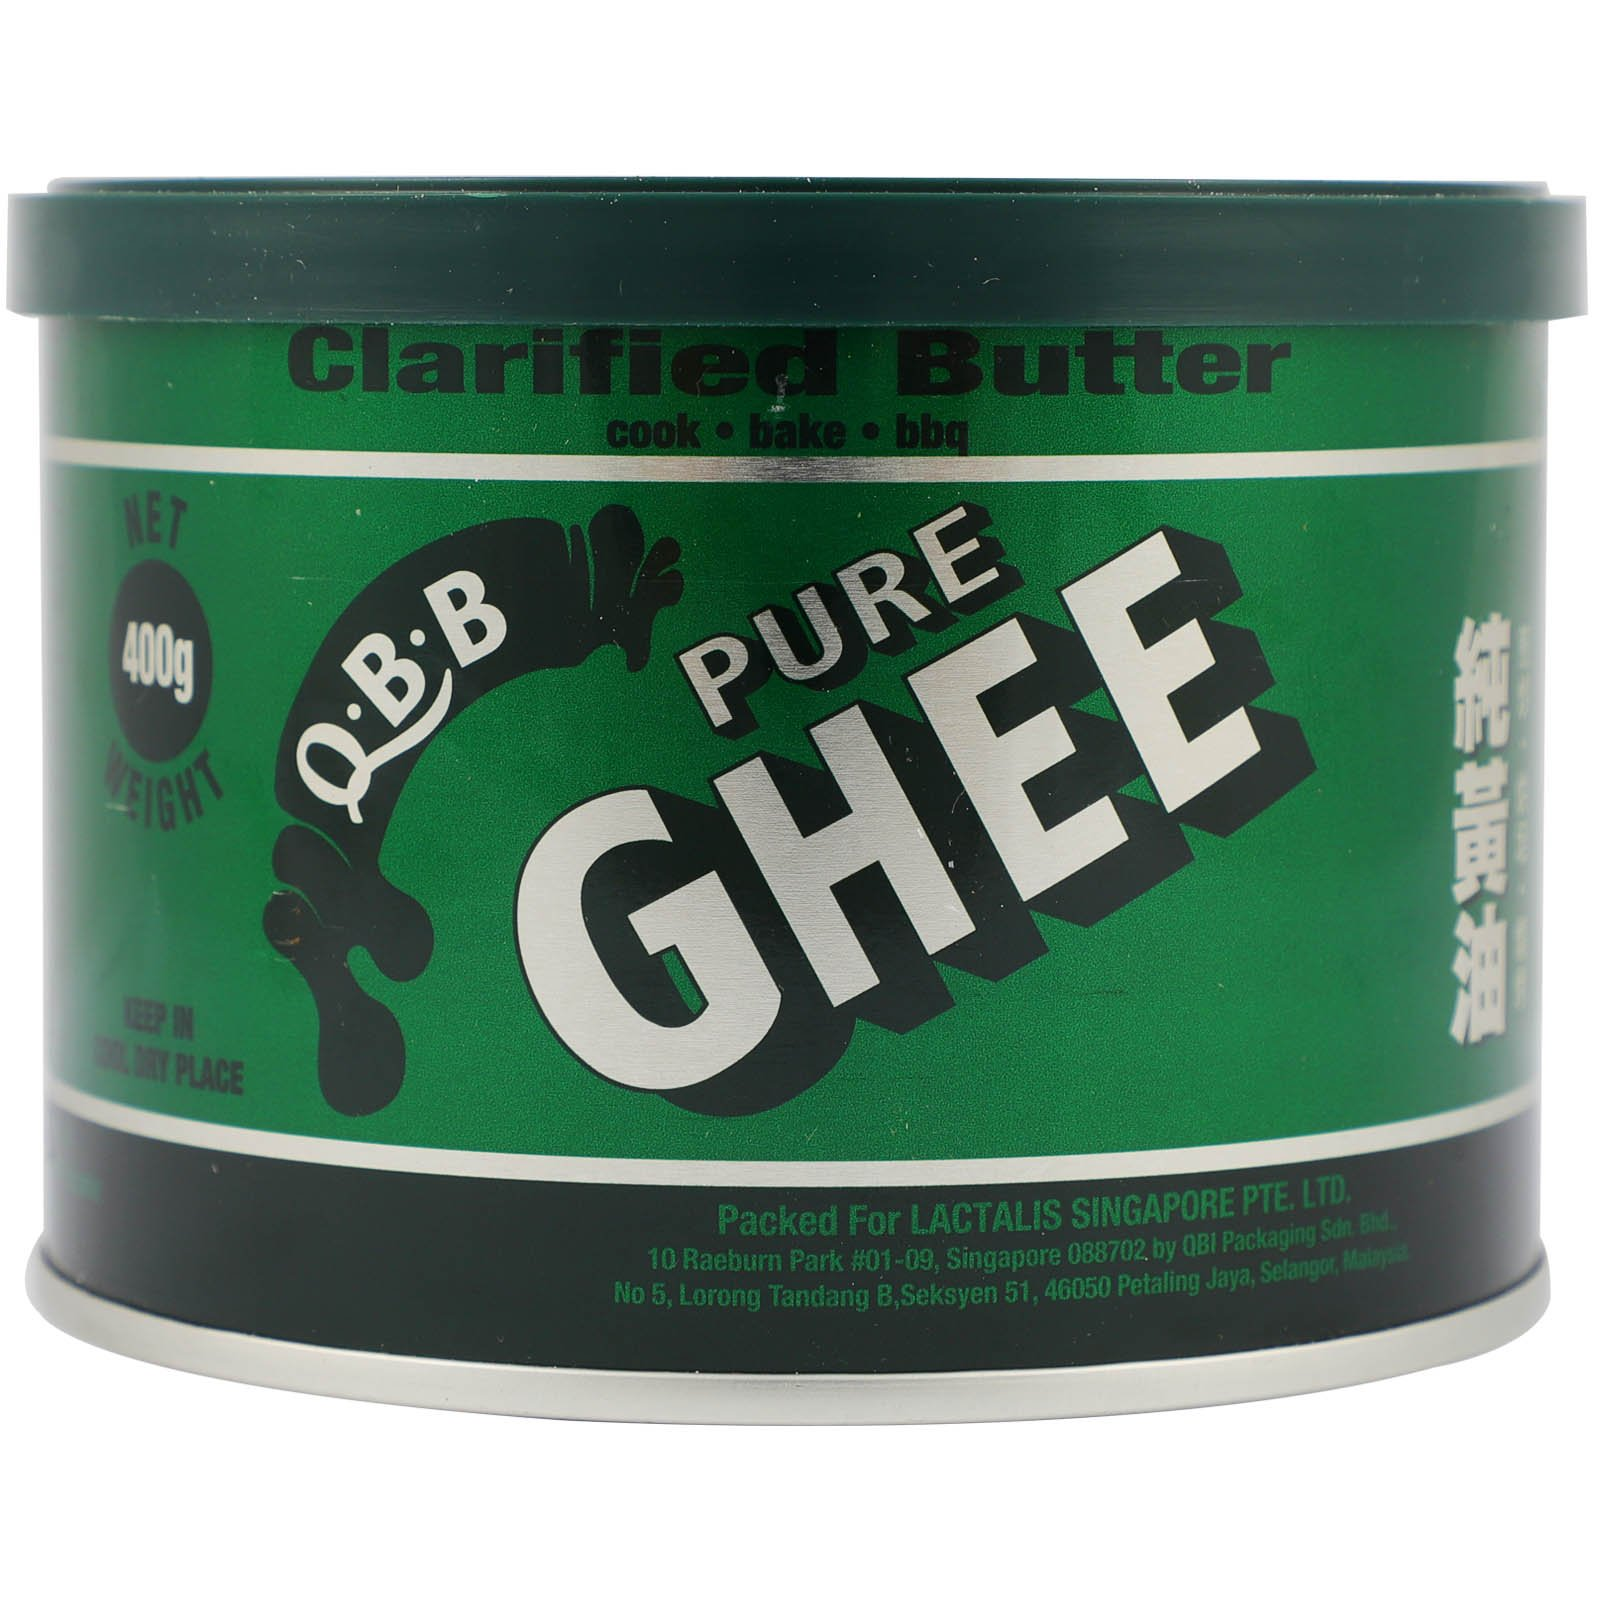 Eamart Com Buy Best Q B B Pure Ghee Clarified Butter 400g Online